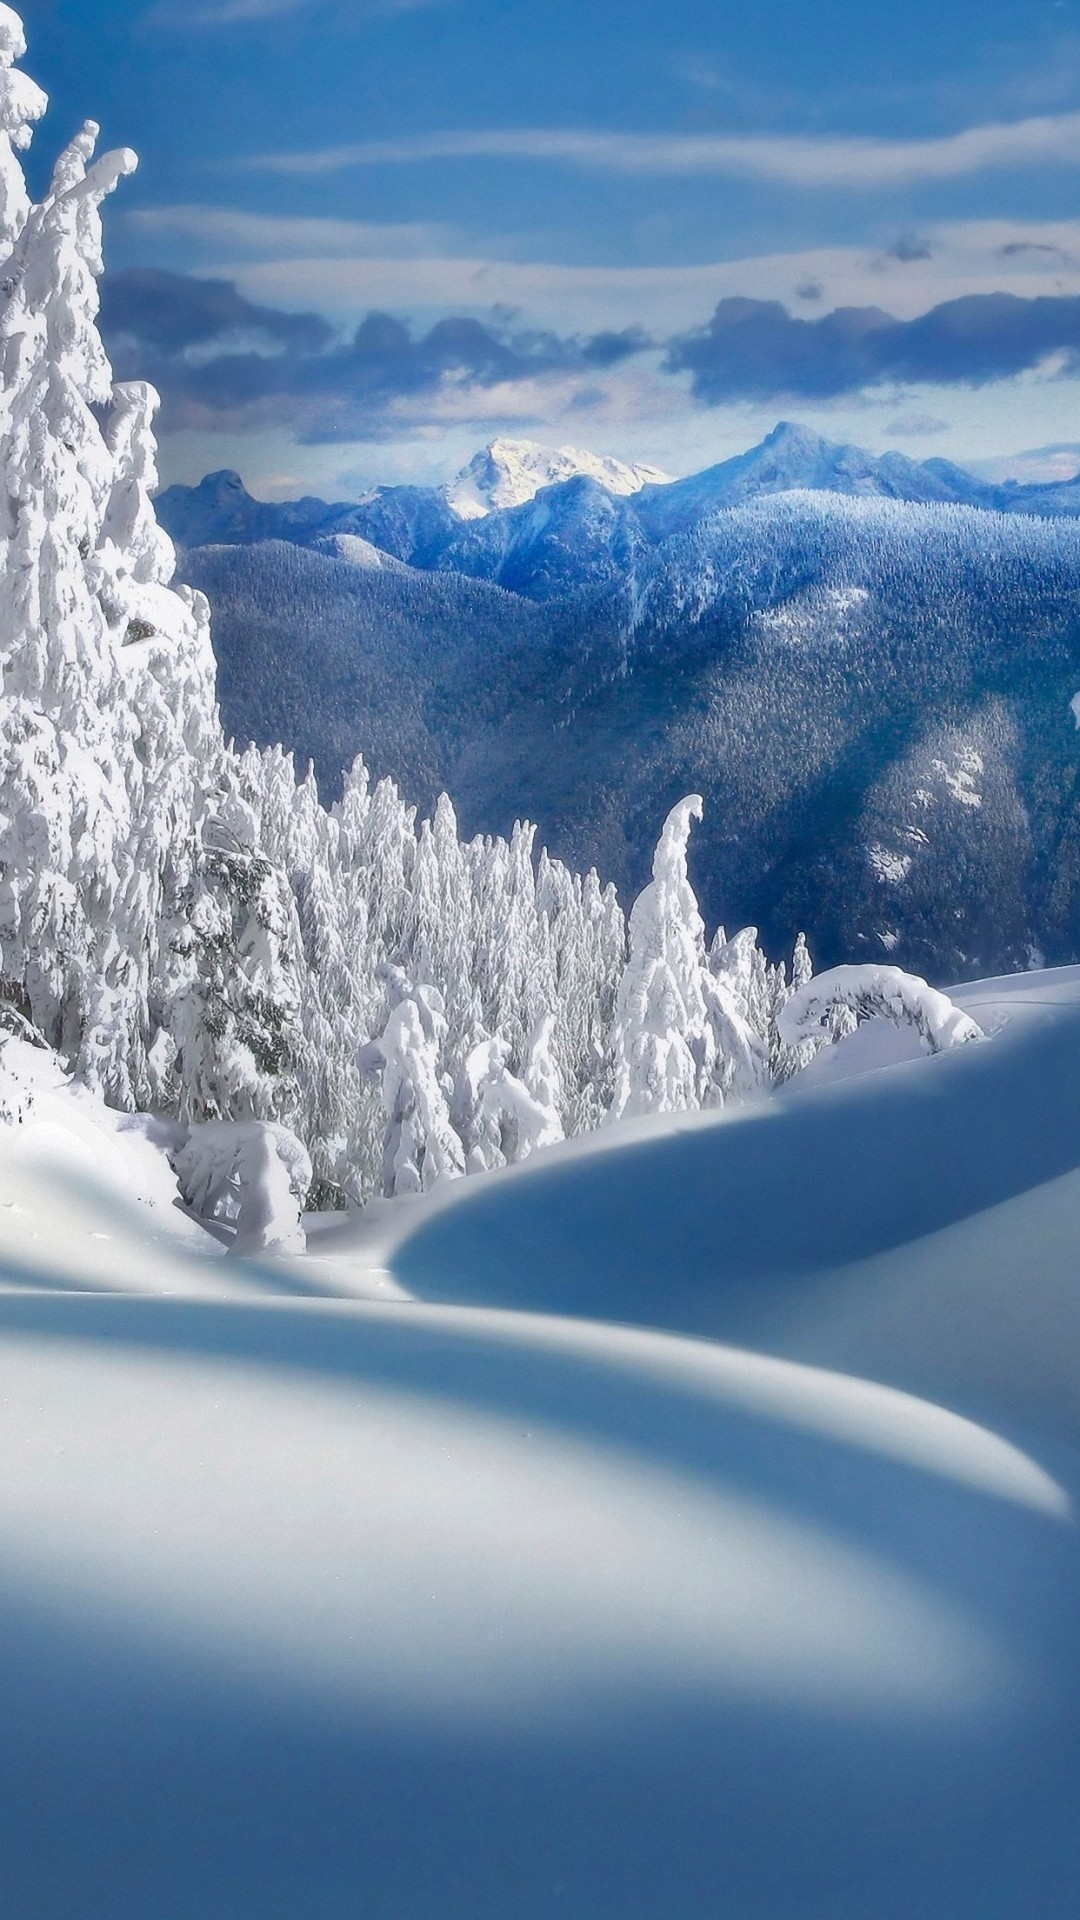 HD nature winter snow wallpaper for iPhone 6 / 6s / plus